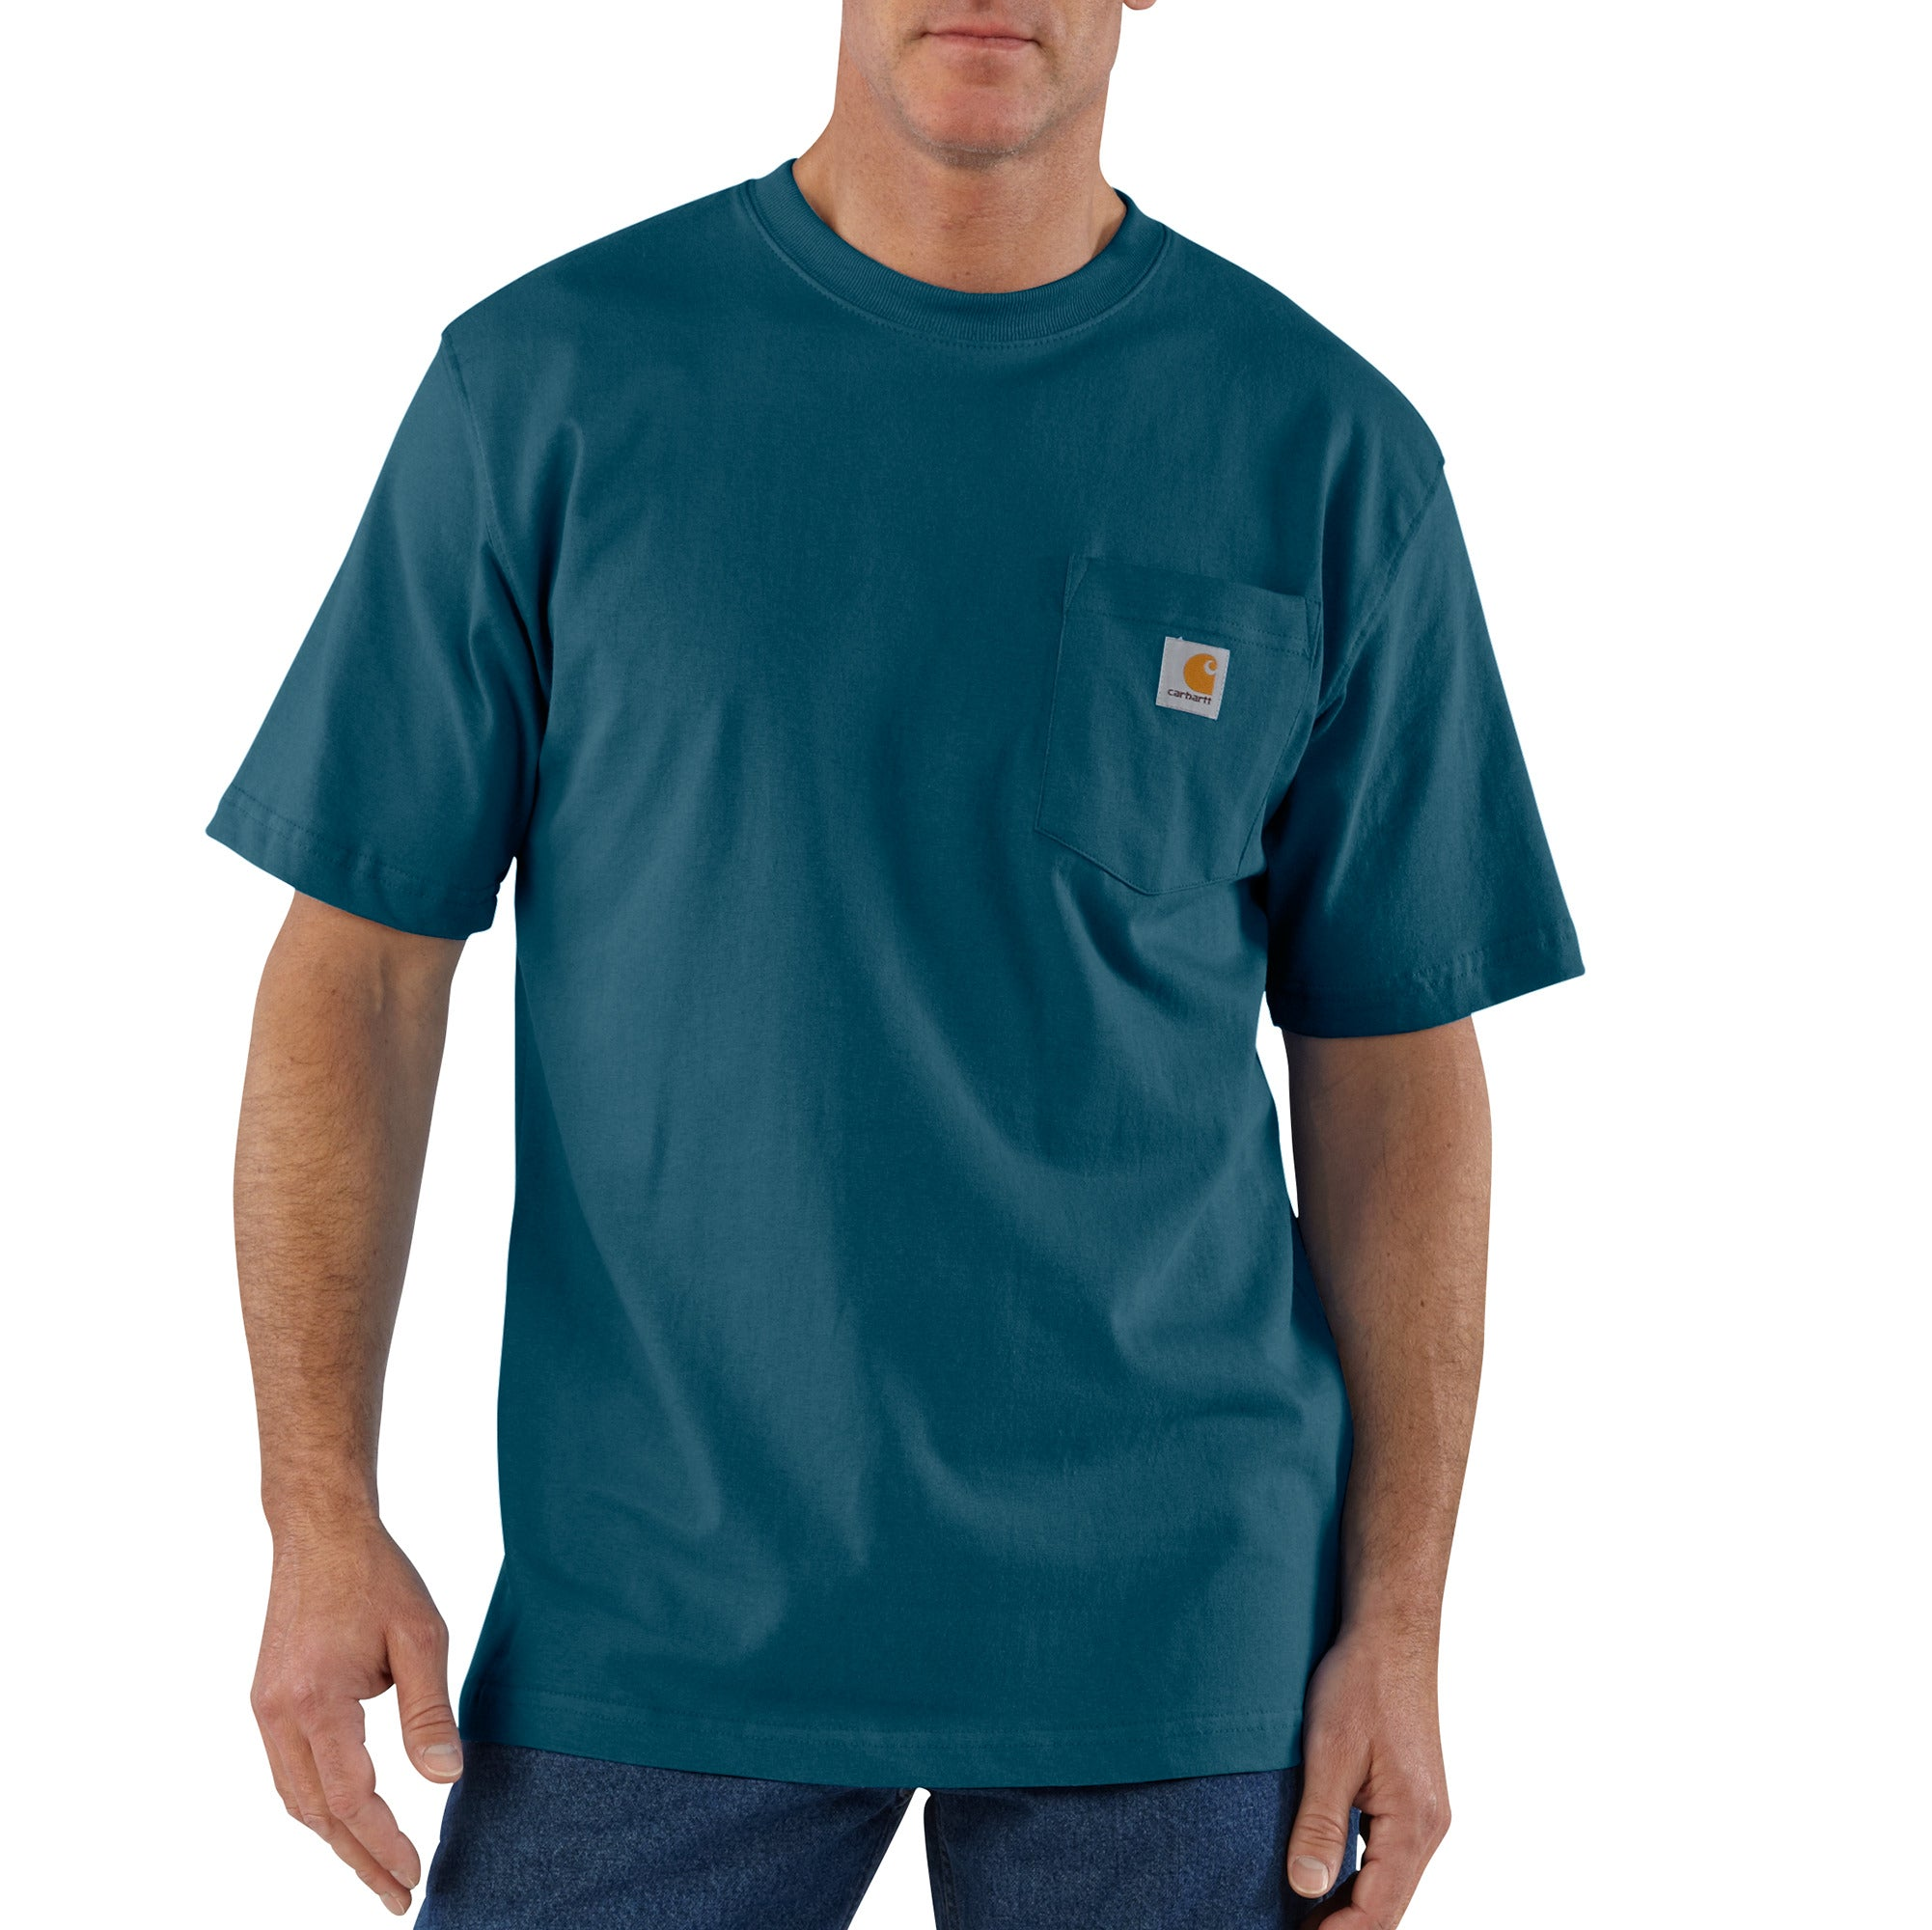 'Carhartt' Men's Workwear Heavyweight Pocket T-Shirt - Stream Blue